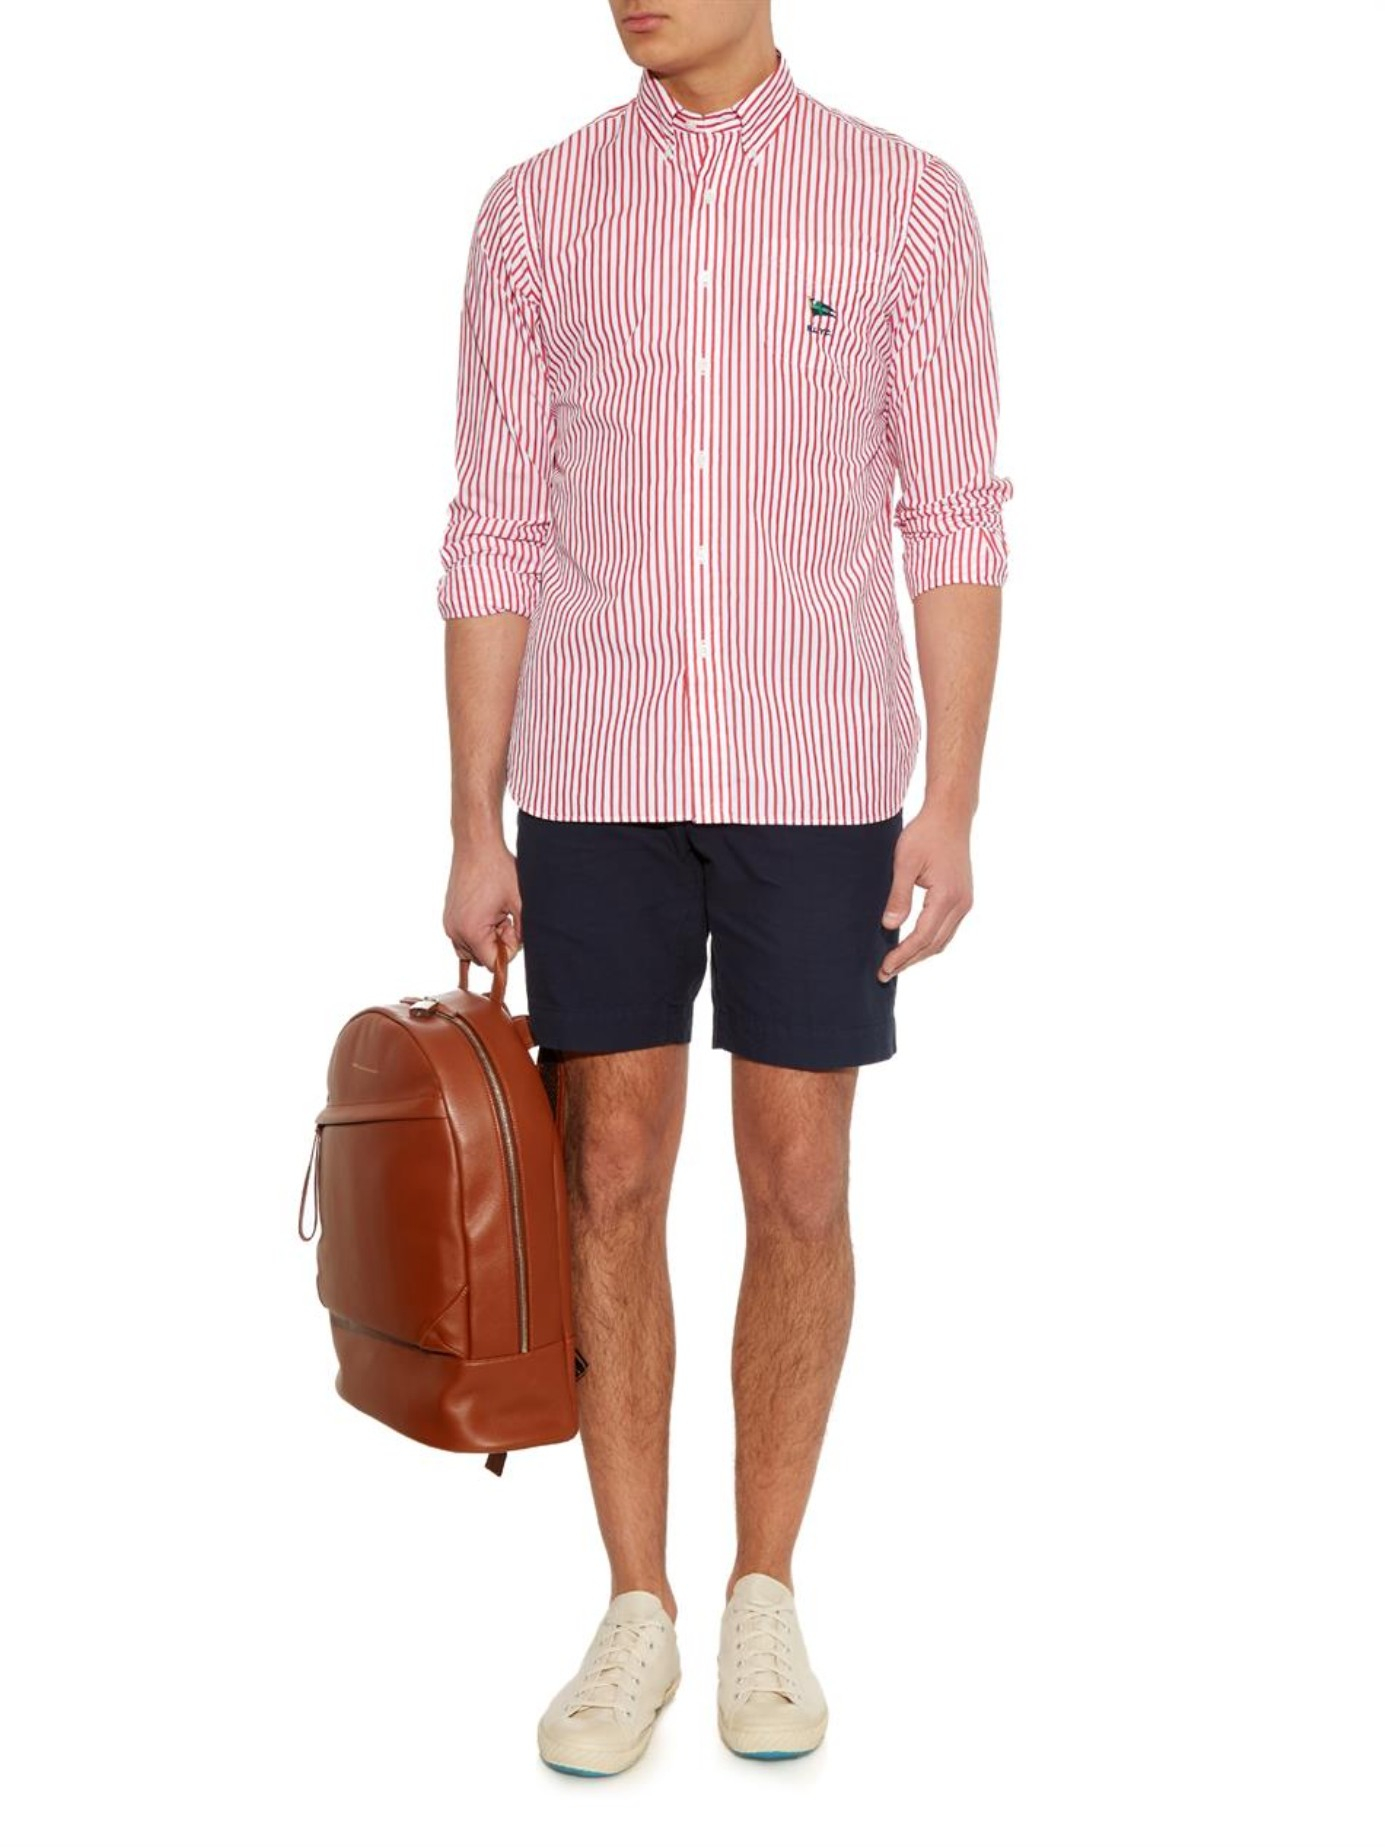 Polo ralph lauren Custom-fit Striped Cotton Shirt in Red ...